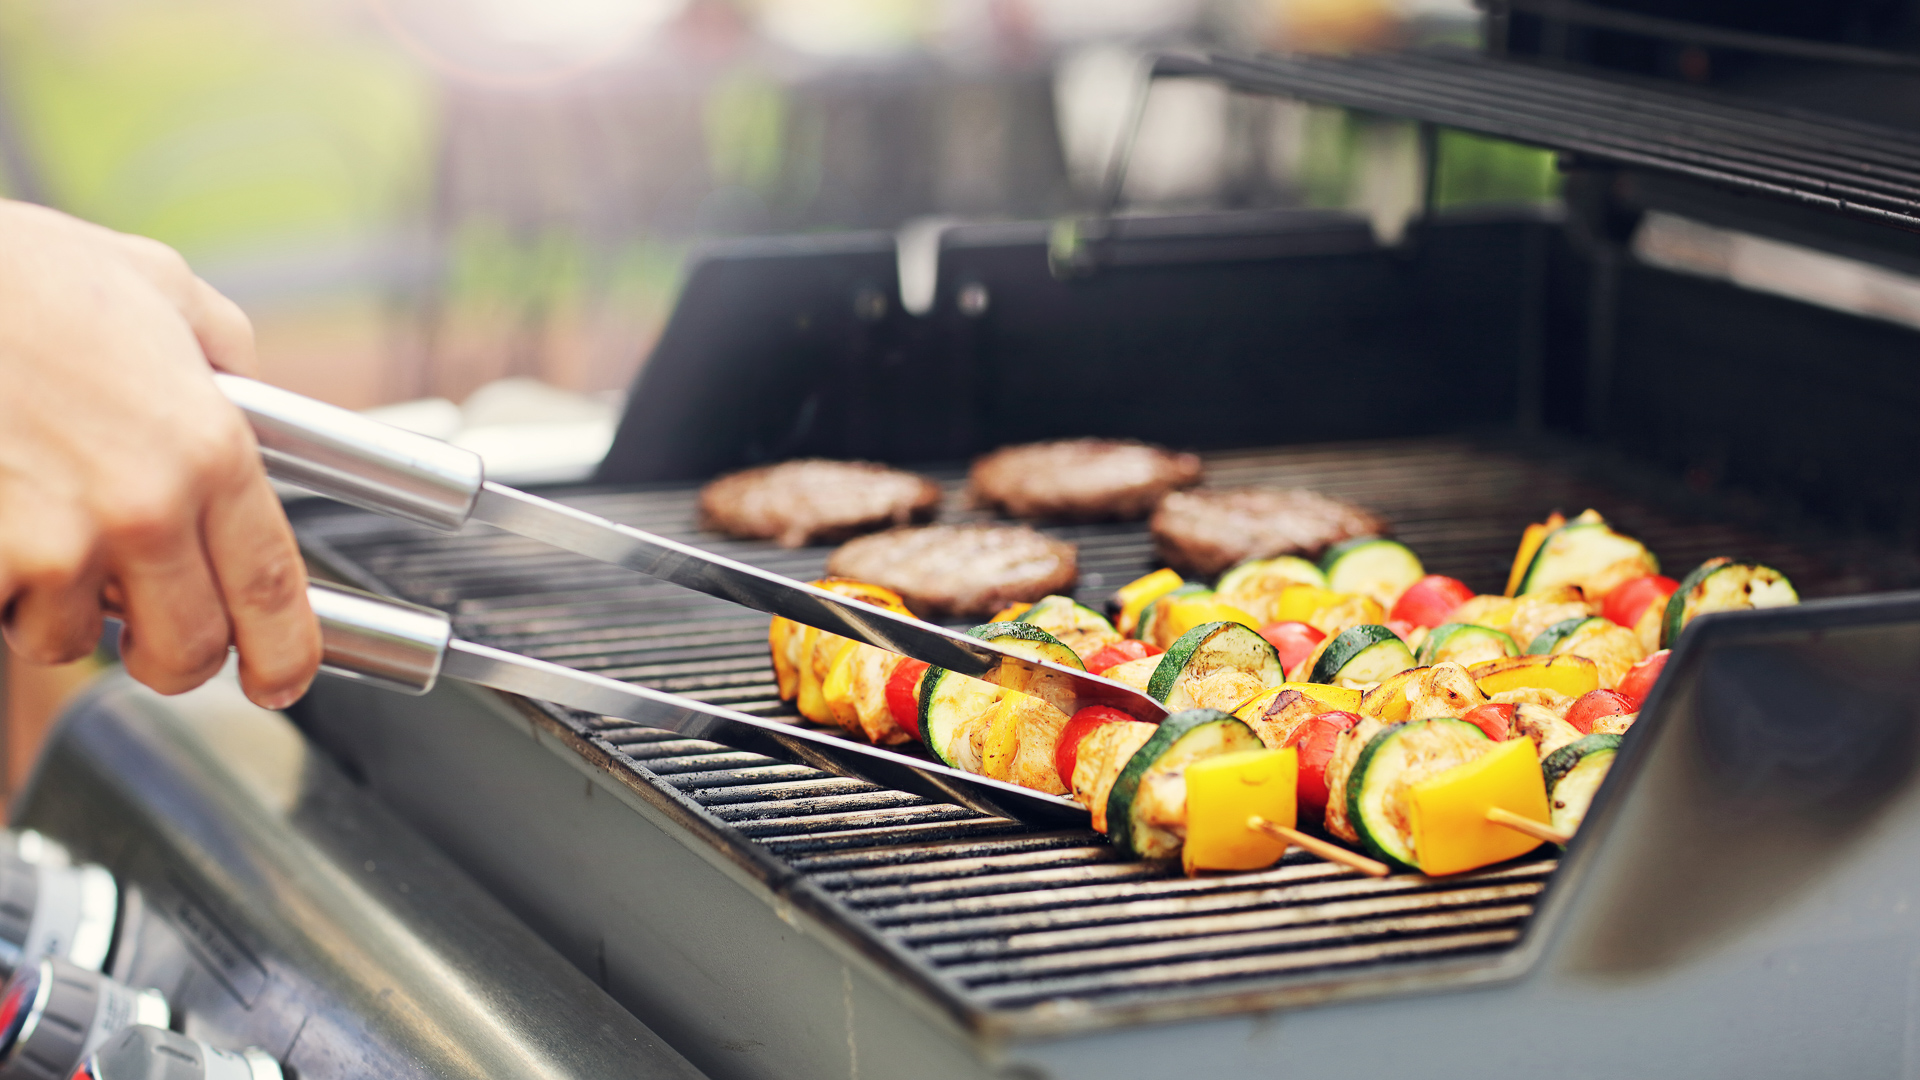 Best Grill Deals From Home Depot Costco and More for National BBQ